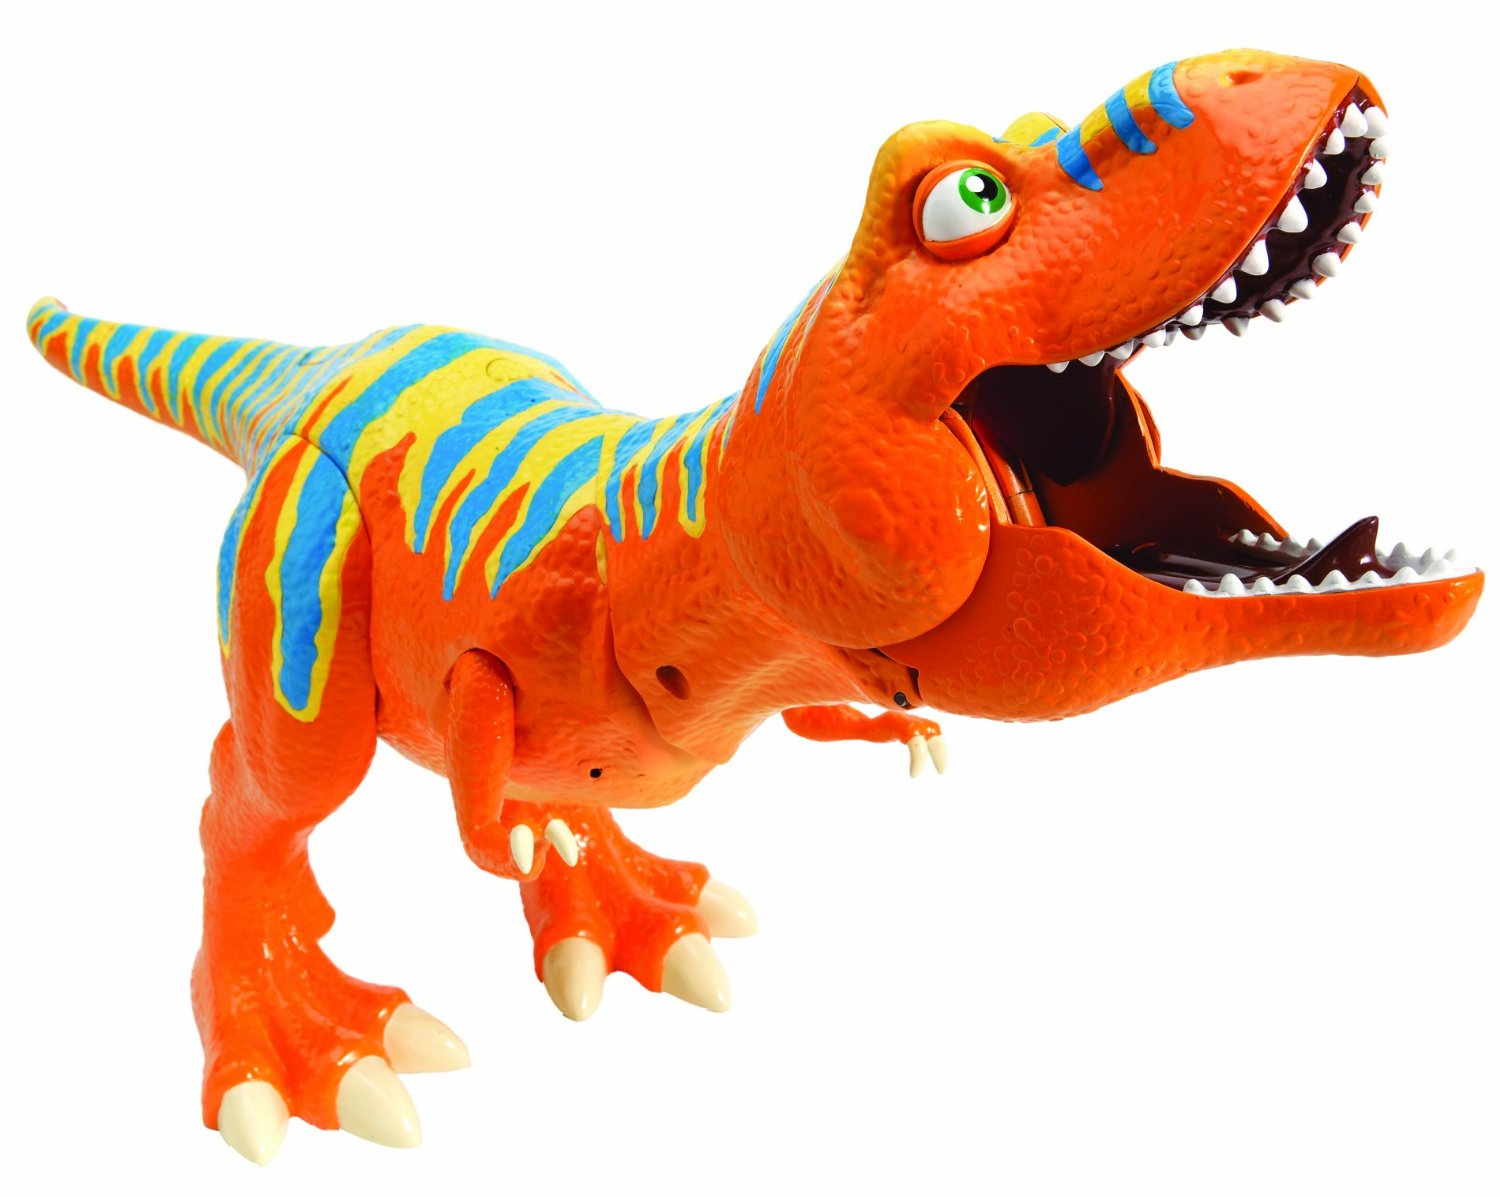 Dino Toy Review.